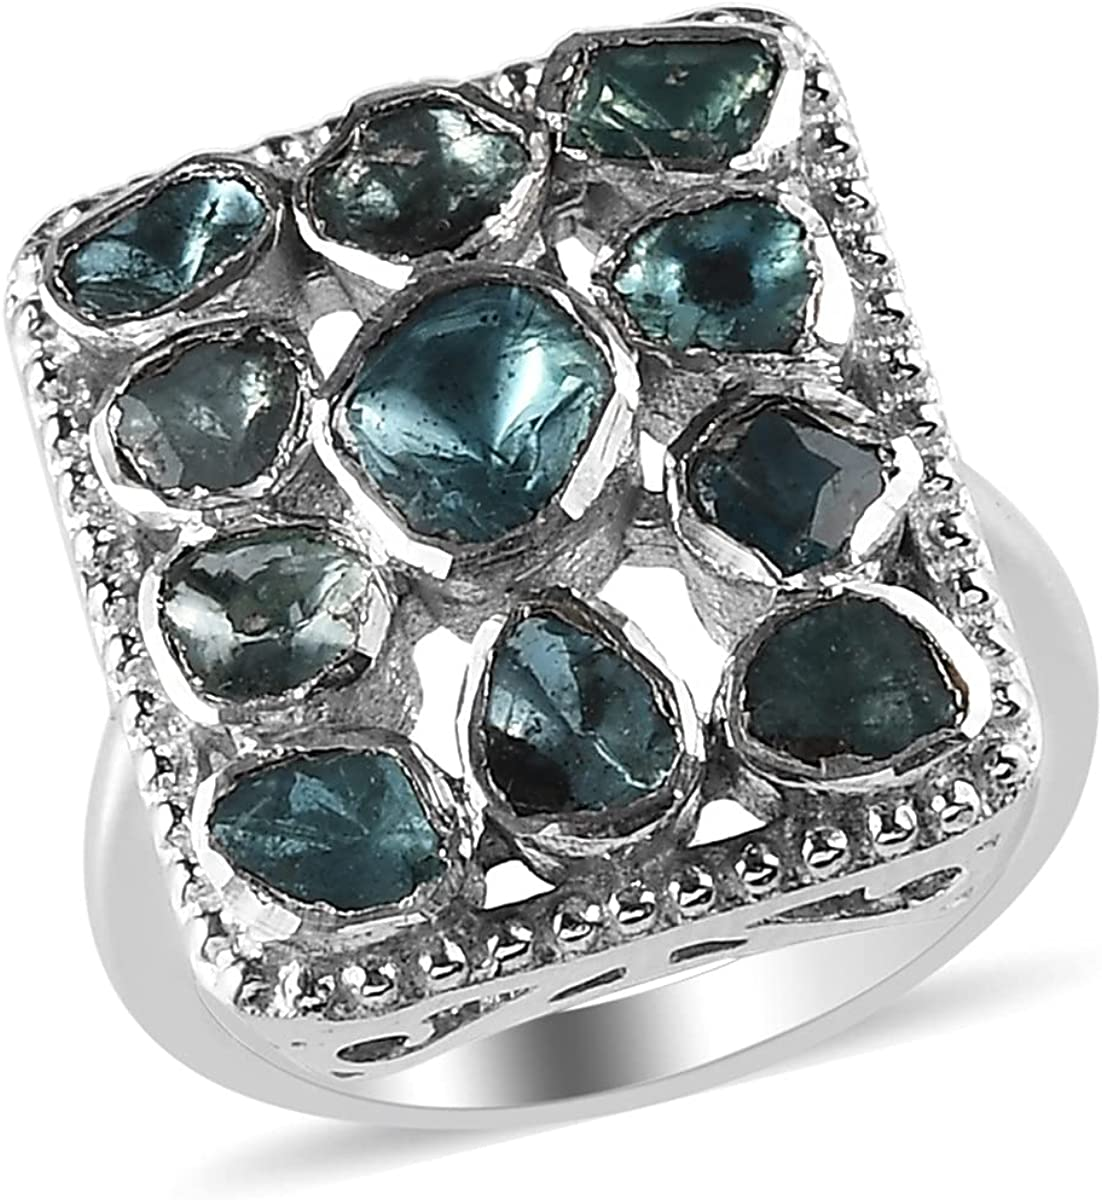 New product!! Shop LC 925 Sterling Silver Diamond Cluster Plated Indefinitely Platinum Ring